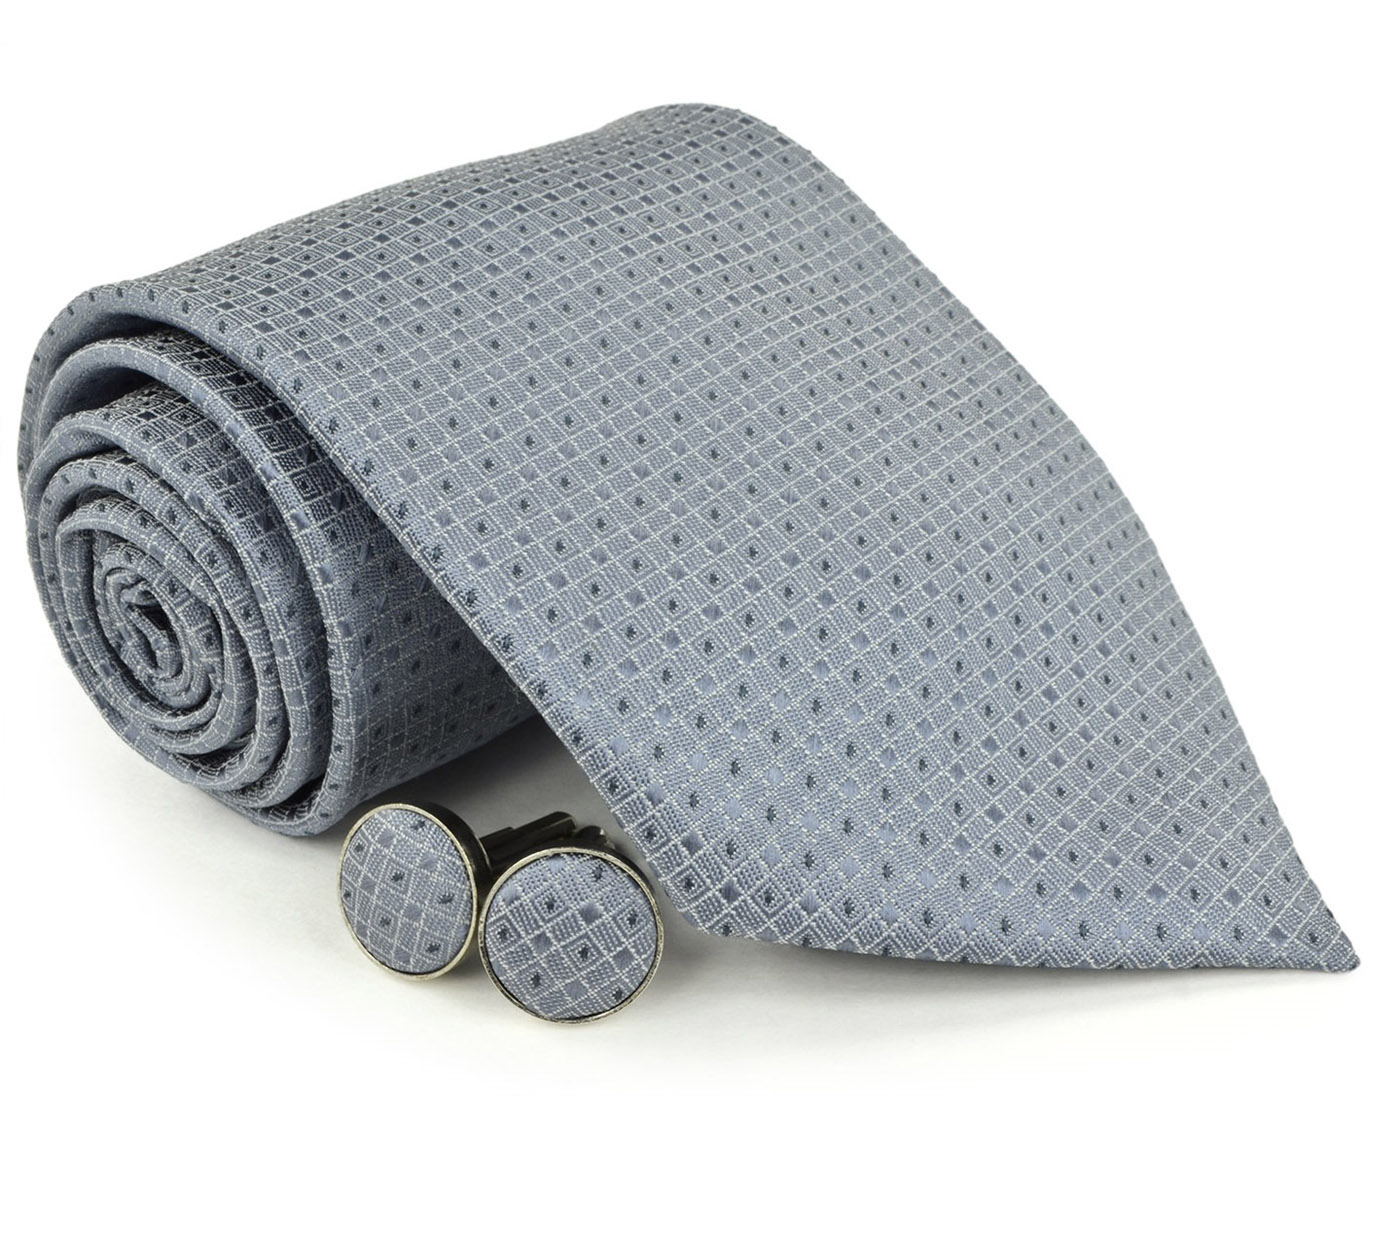 Moda Di Raza Men's NeckTies - 3 Inch Tie - Gift Box Sets - Gray Tie With Cuff-link In Box